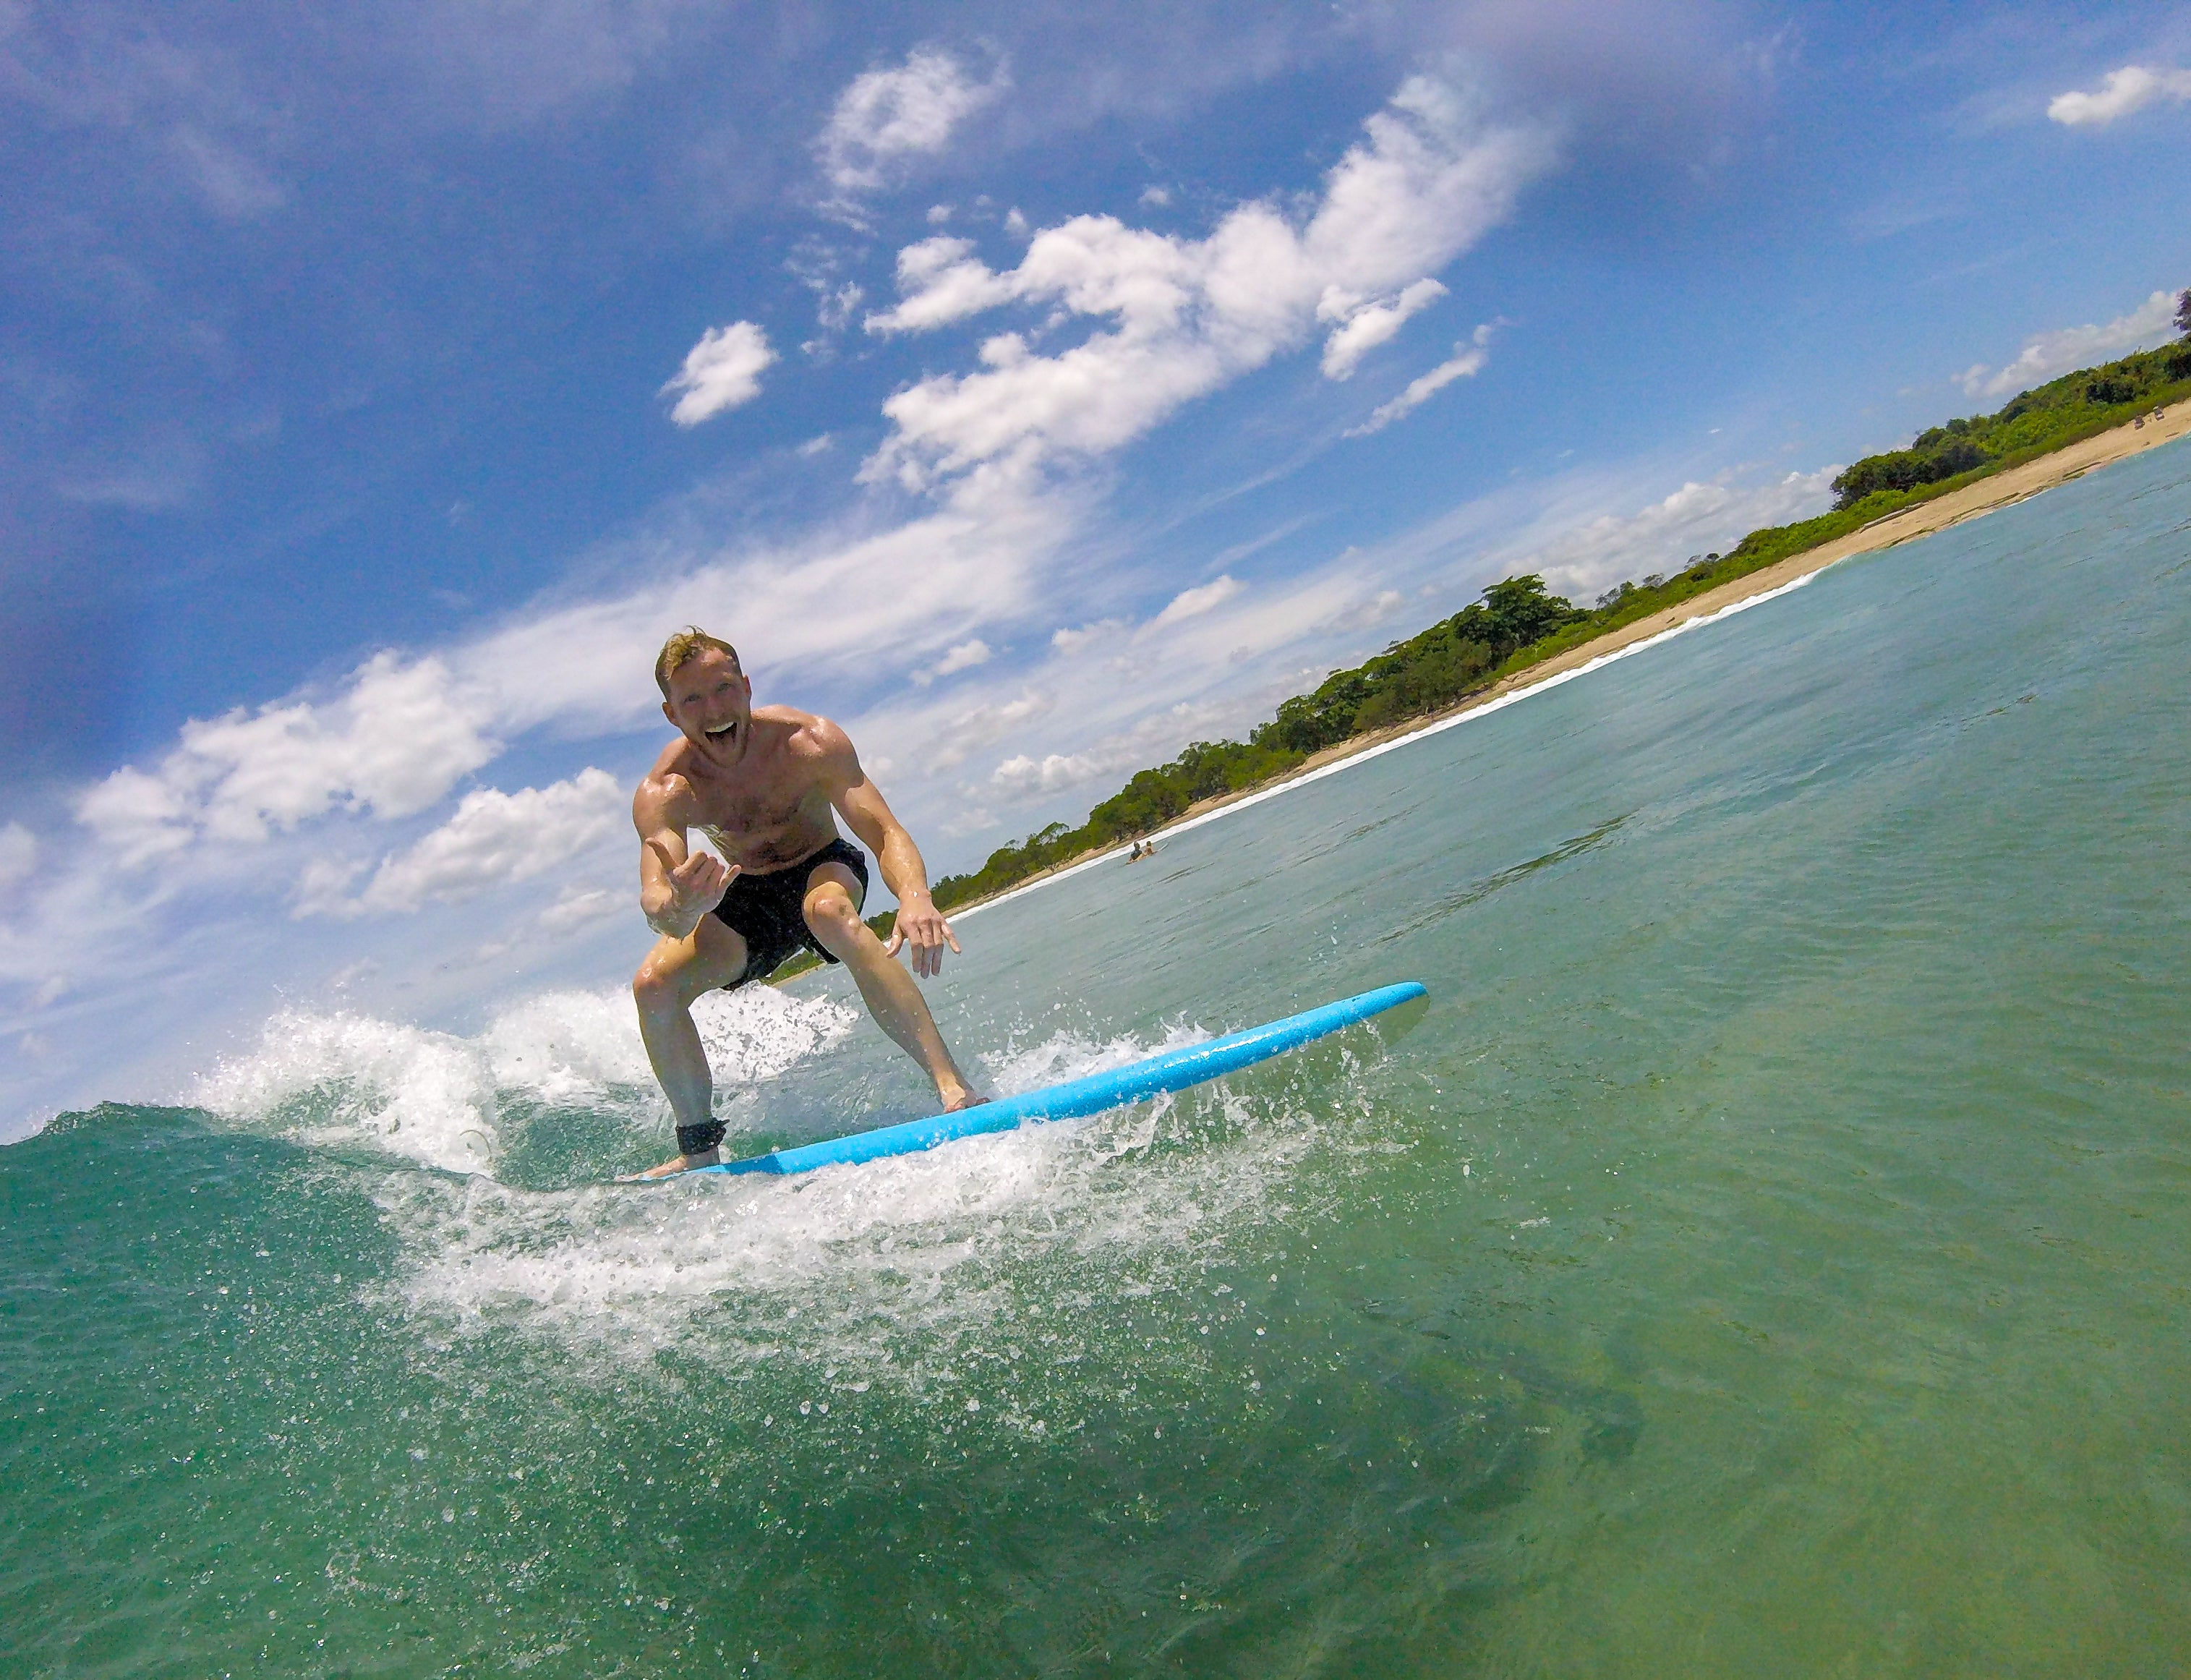 sala verde founder nicholas johnson surfing wave in costa rica